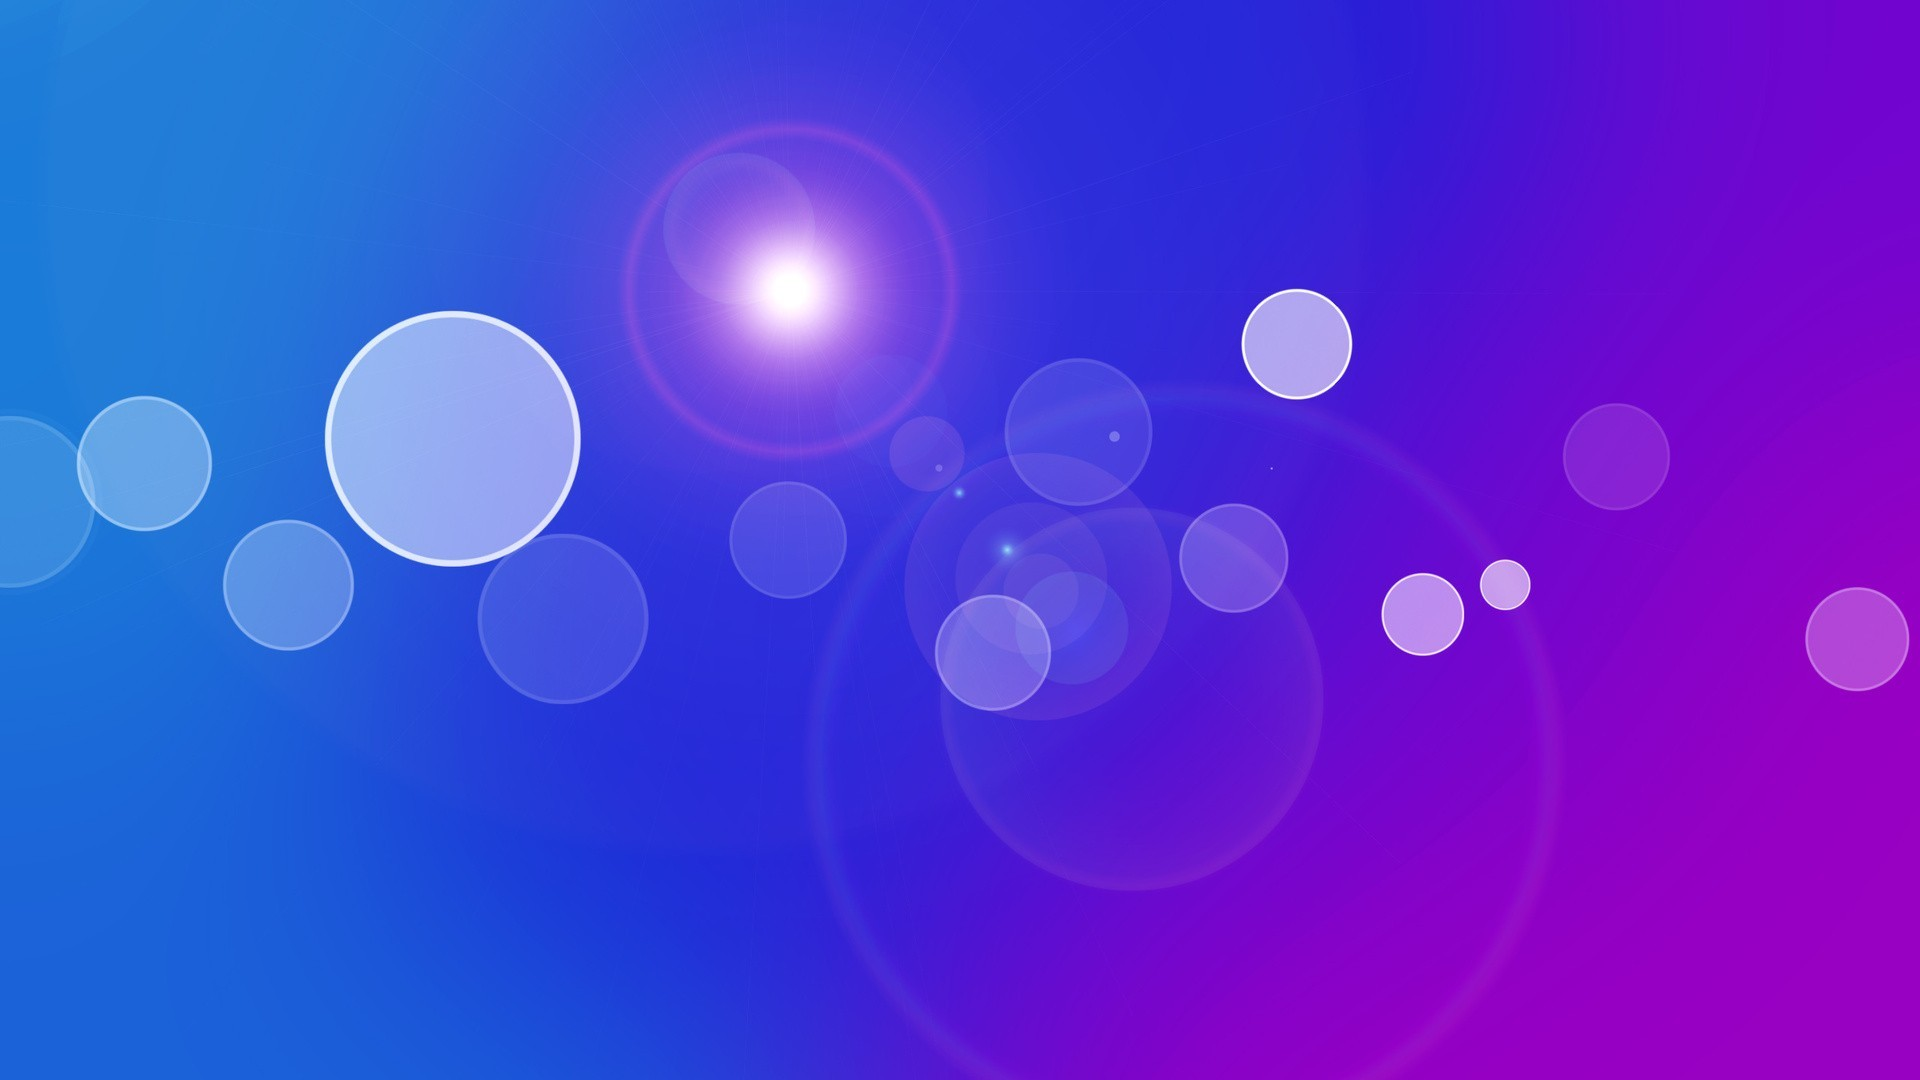 1920x1080 light abstract blue purple circles gradient colors wallpaper